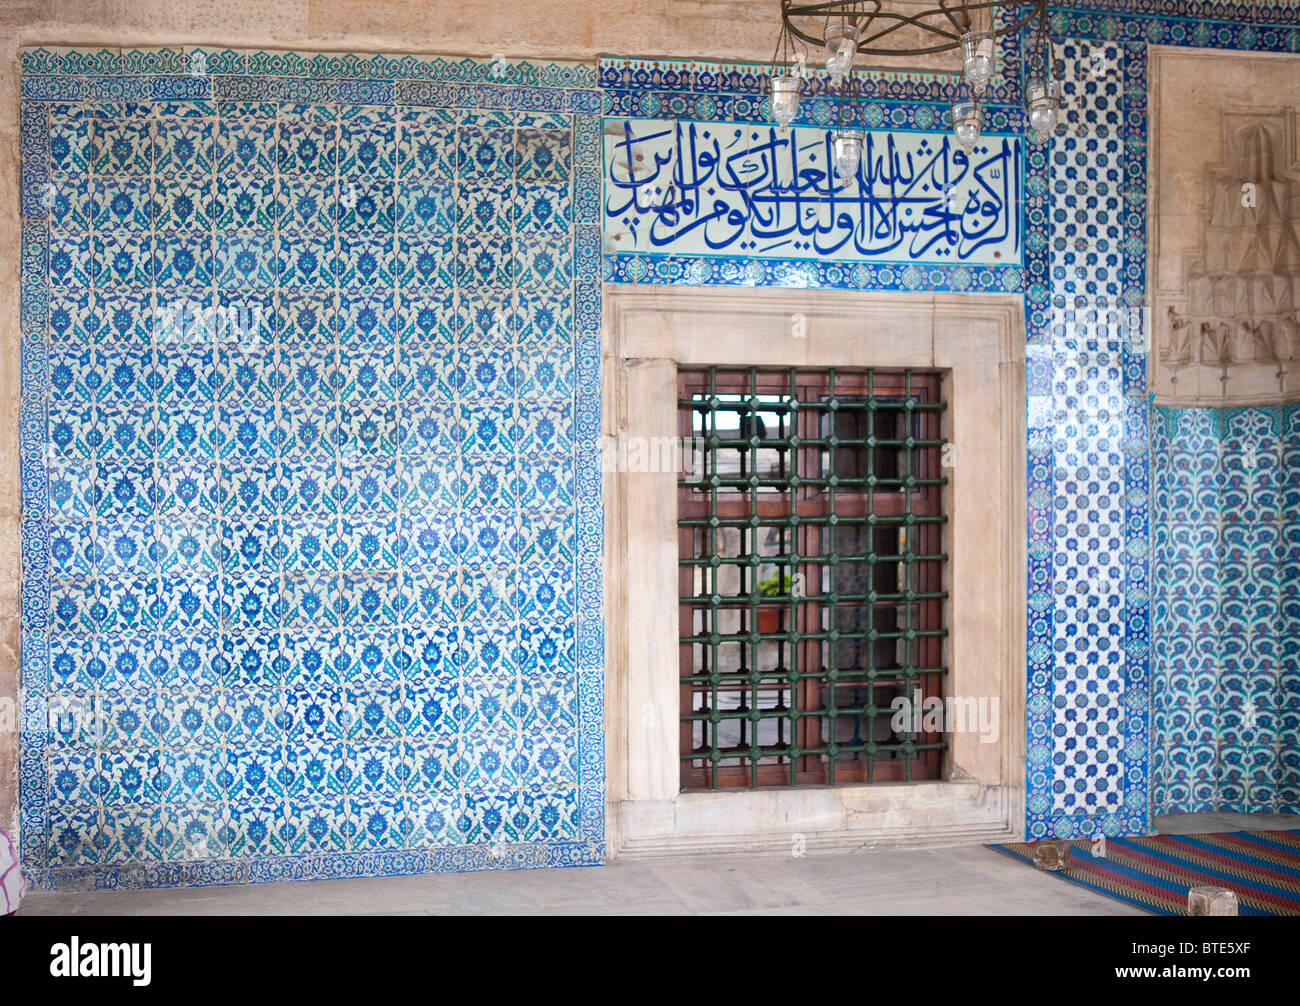 Yeni Mosque Istanbul Turkey. blue ceramic tiles interior details ...